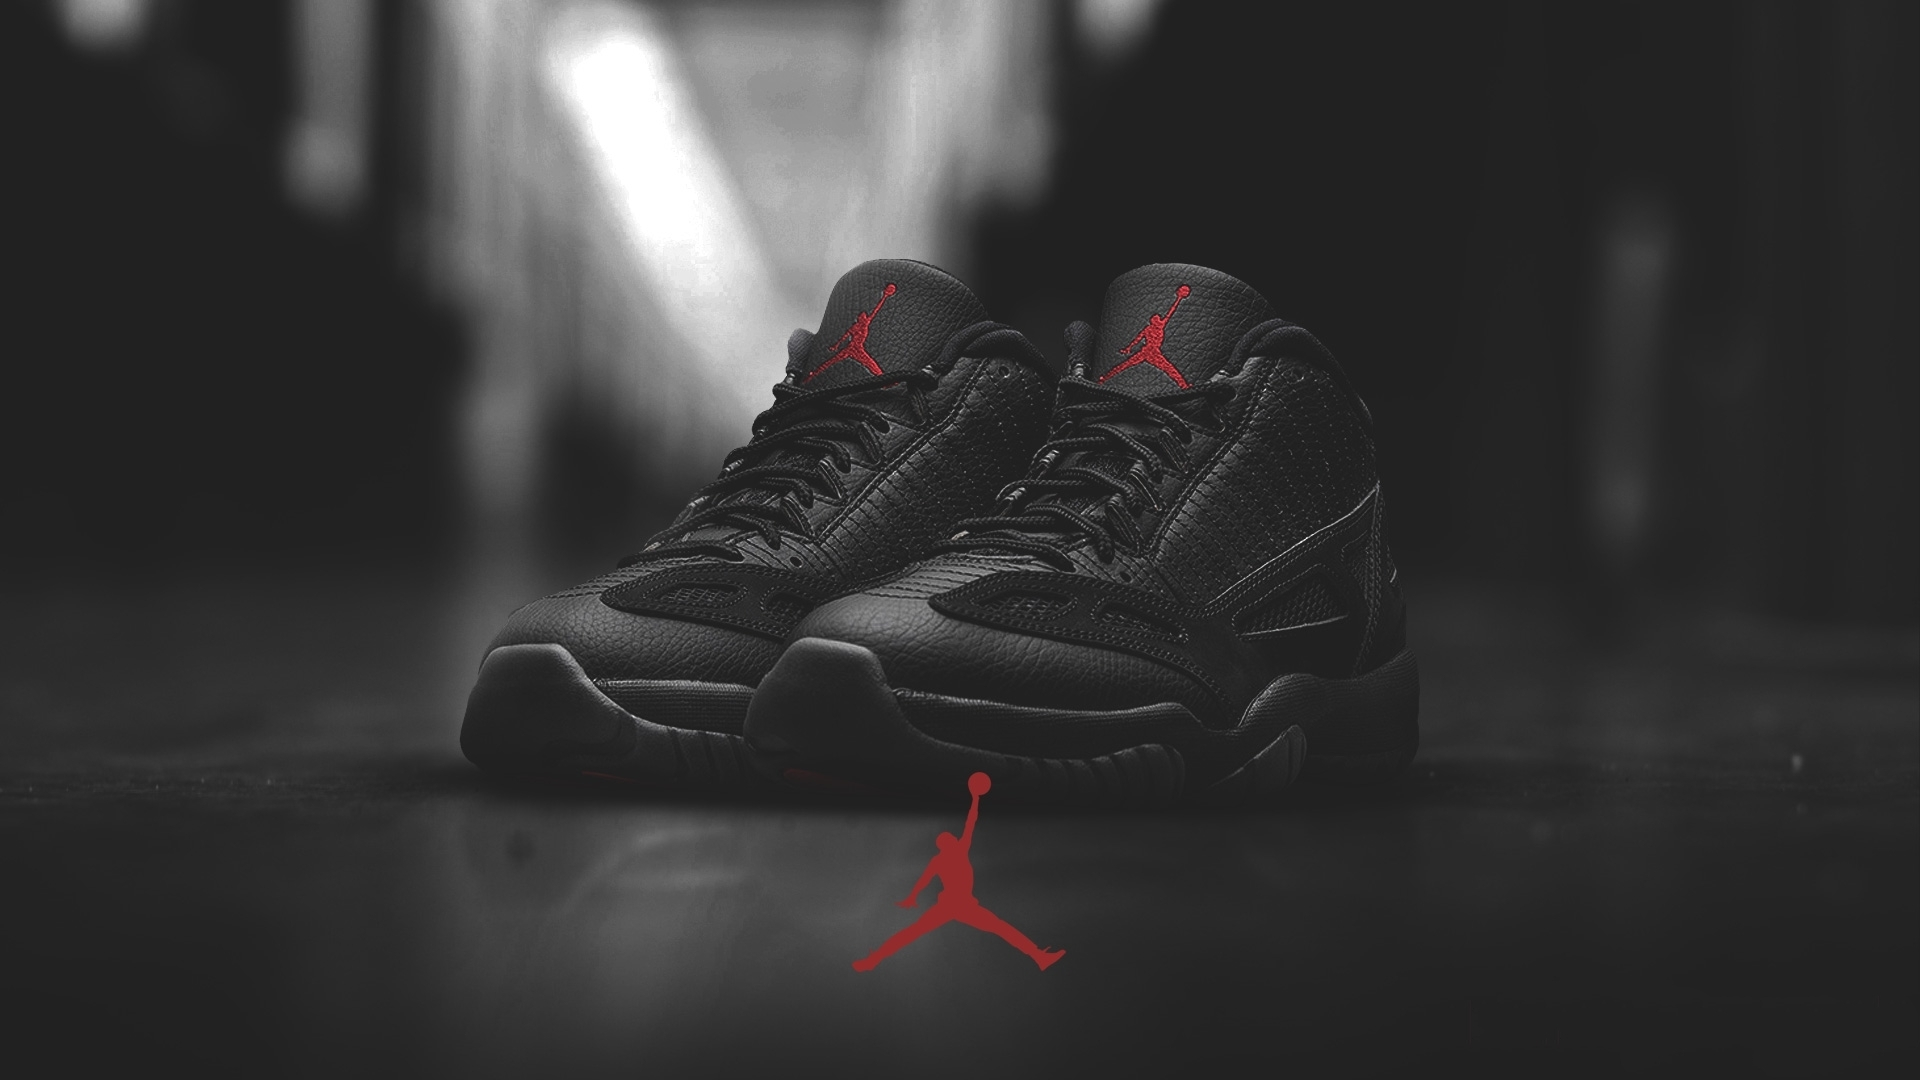 download free air jordan shoes wallpapers | pixelstalk